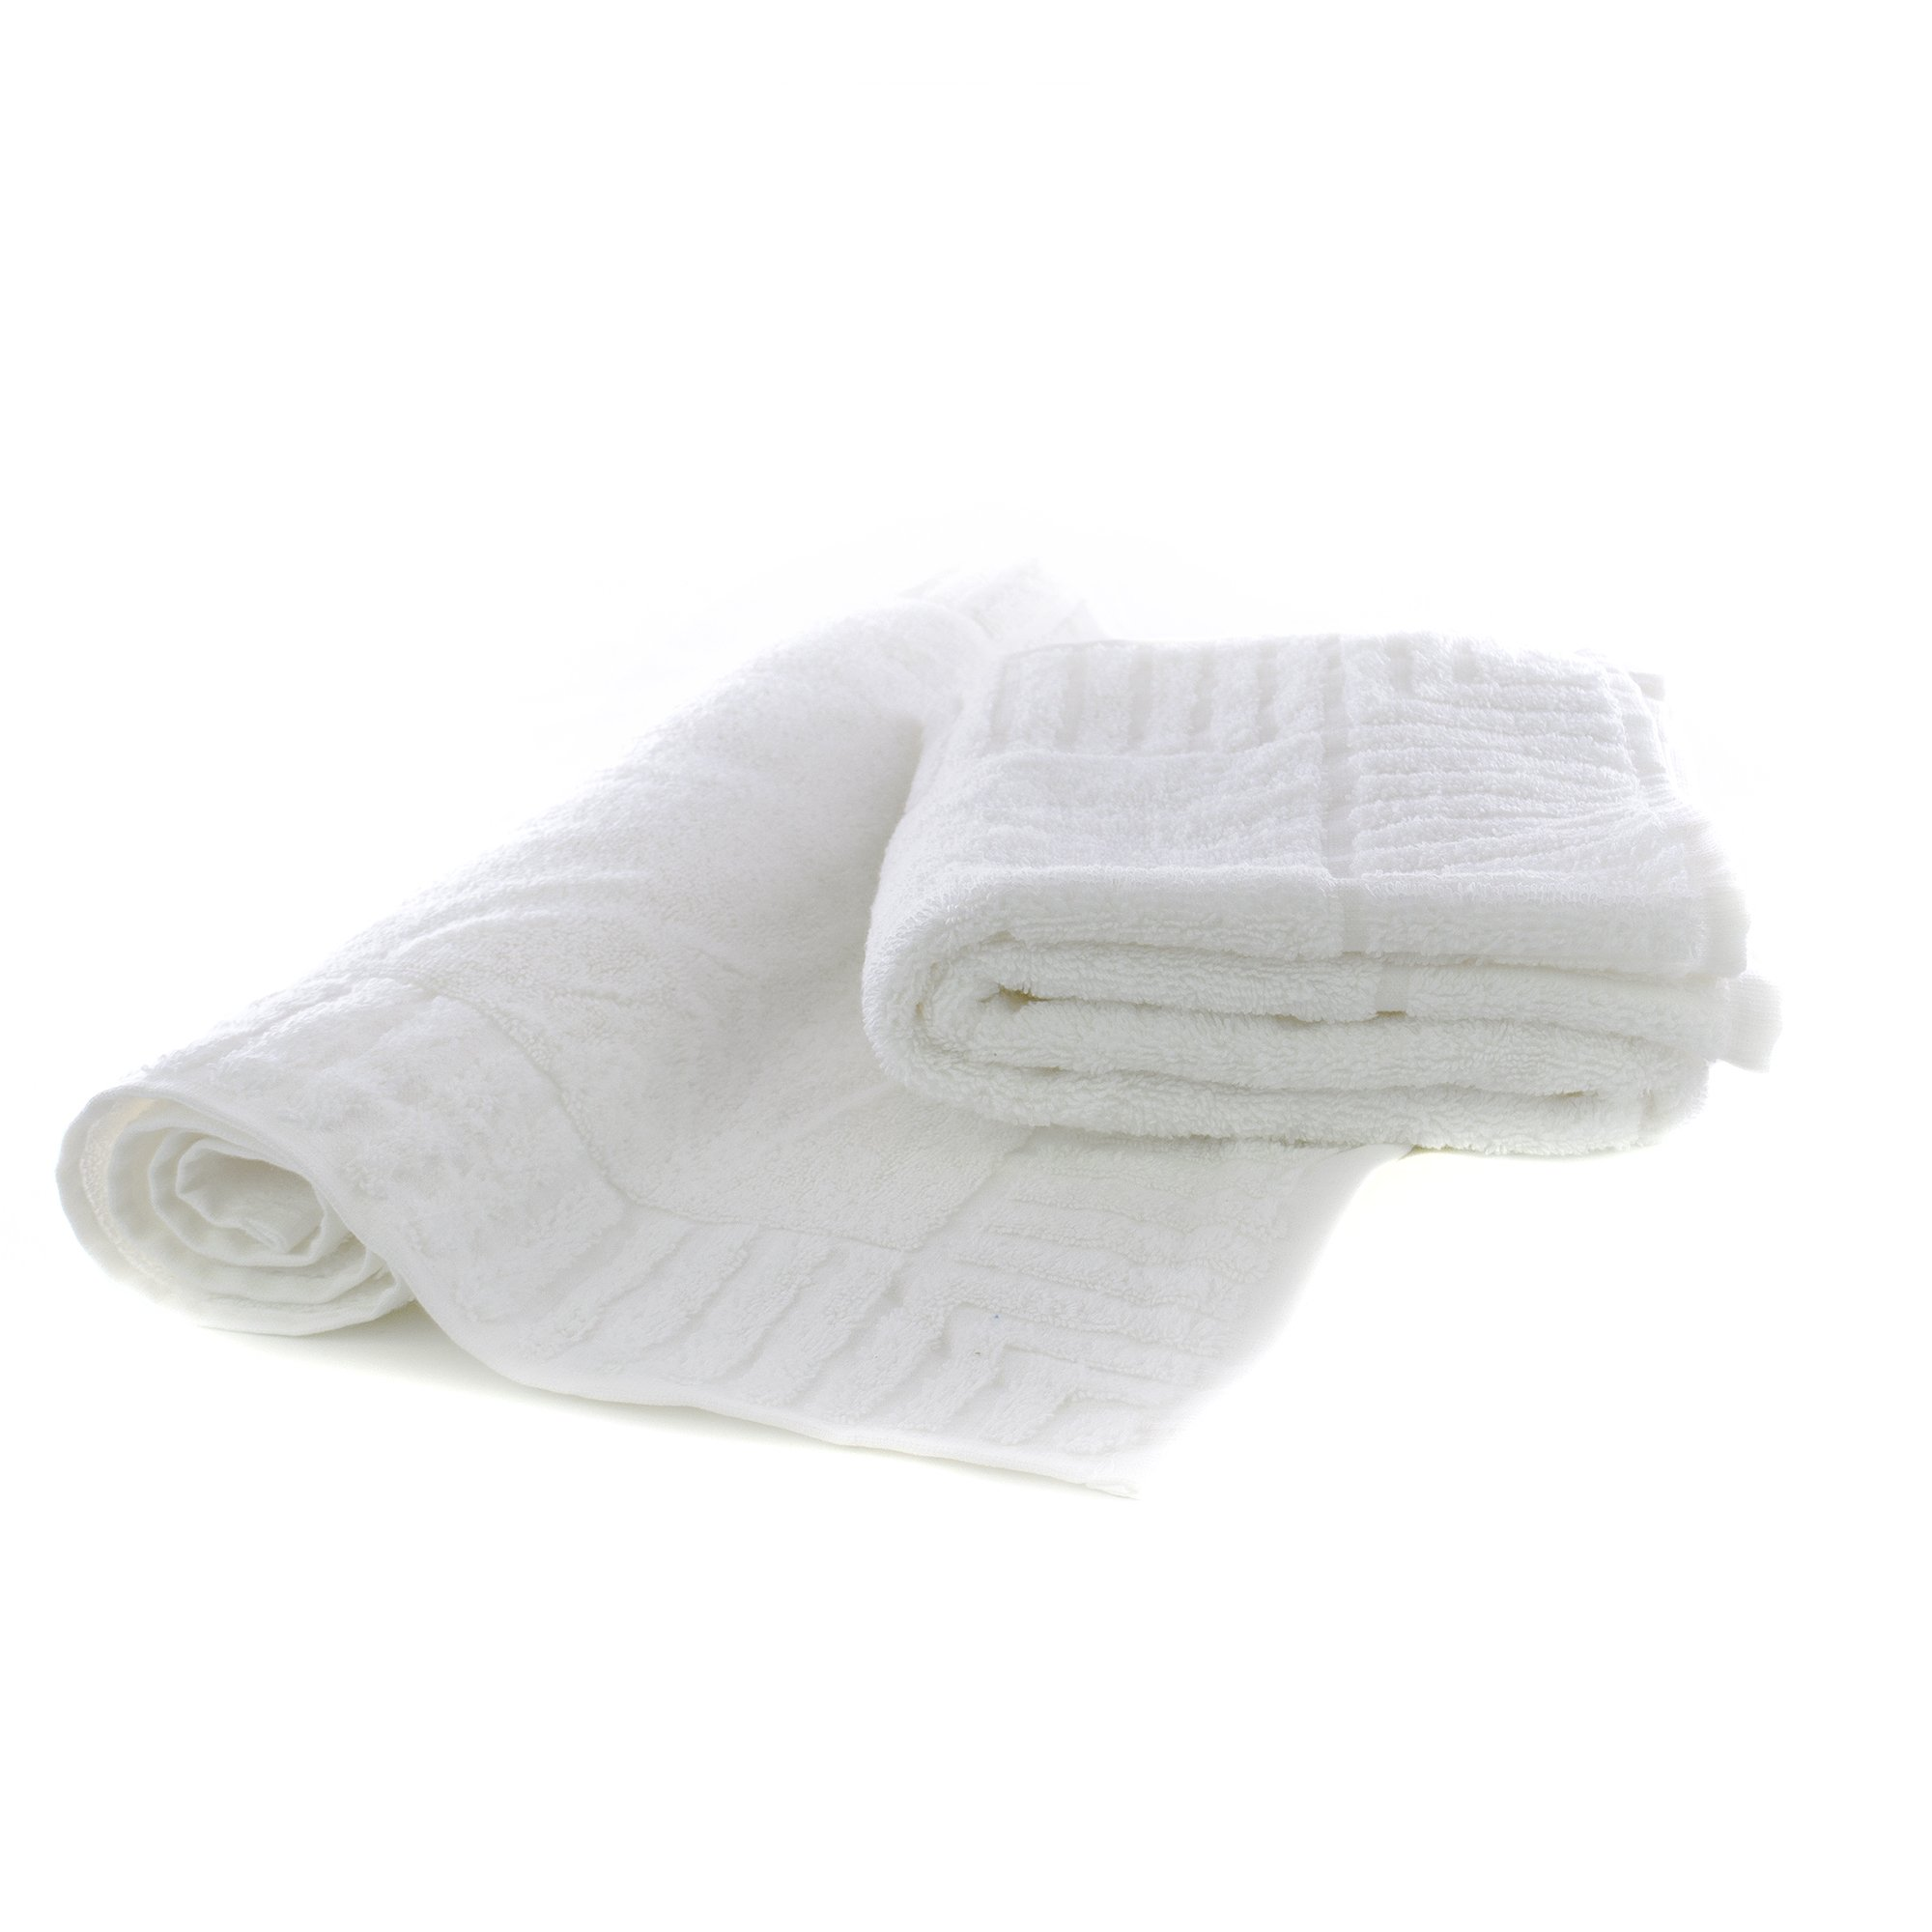 bath mats jacquard dkny luxury ivory towel towels geometrix mat at stack bedeck